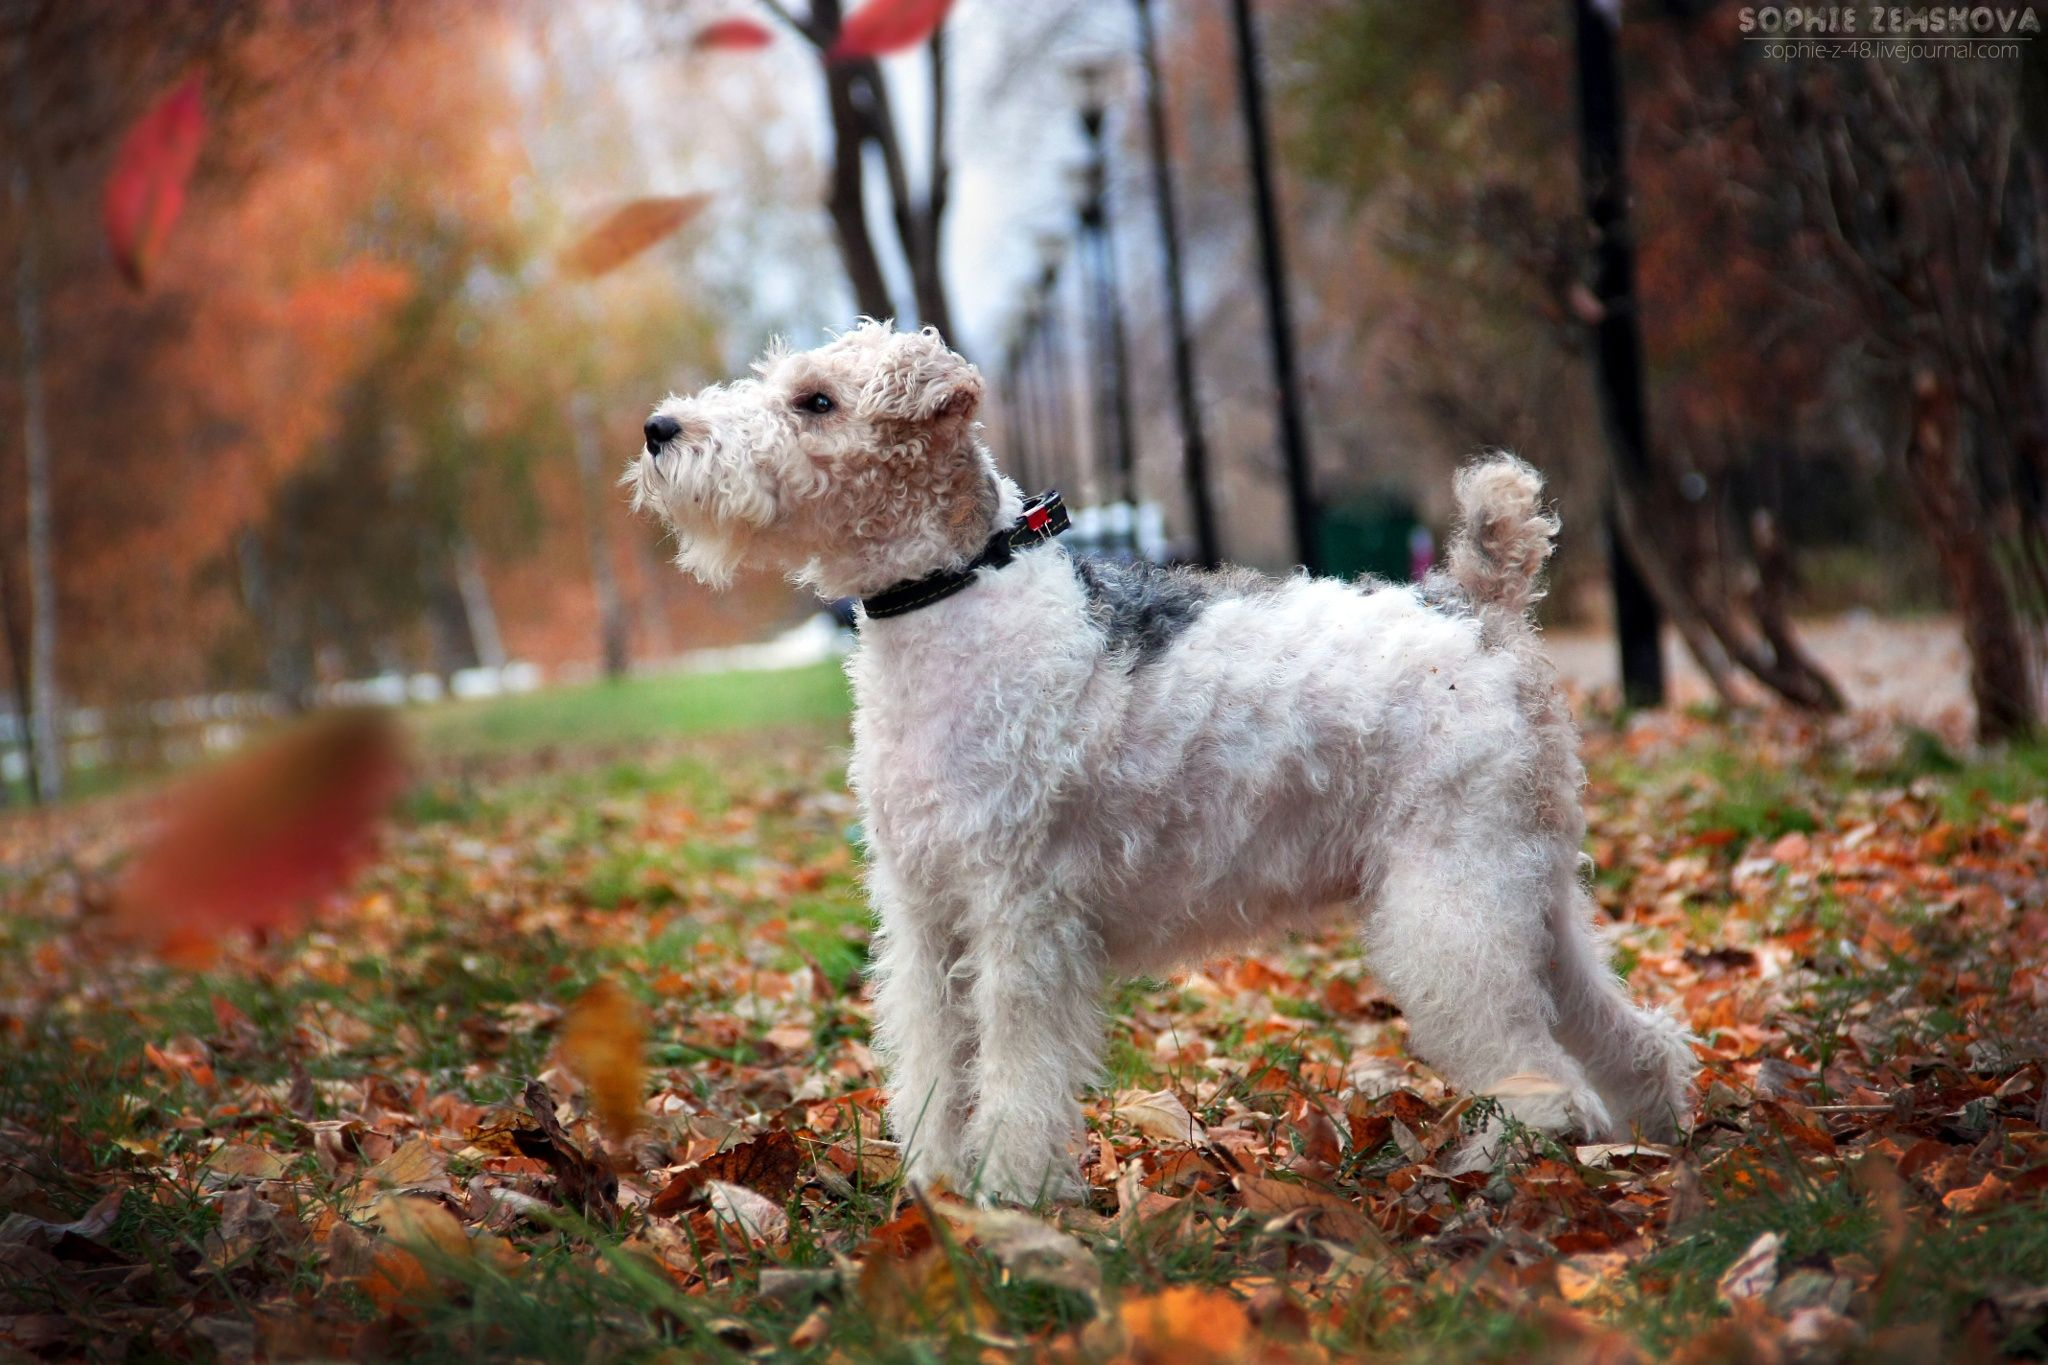 Fox Terrier wire haired by Sophie Zemskova on 500px